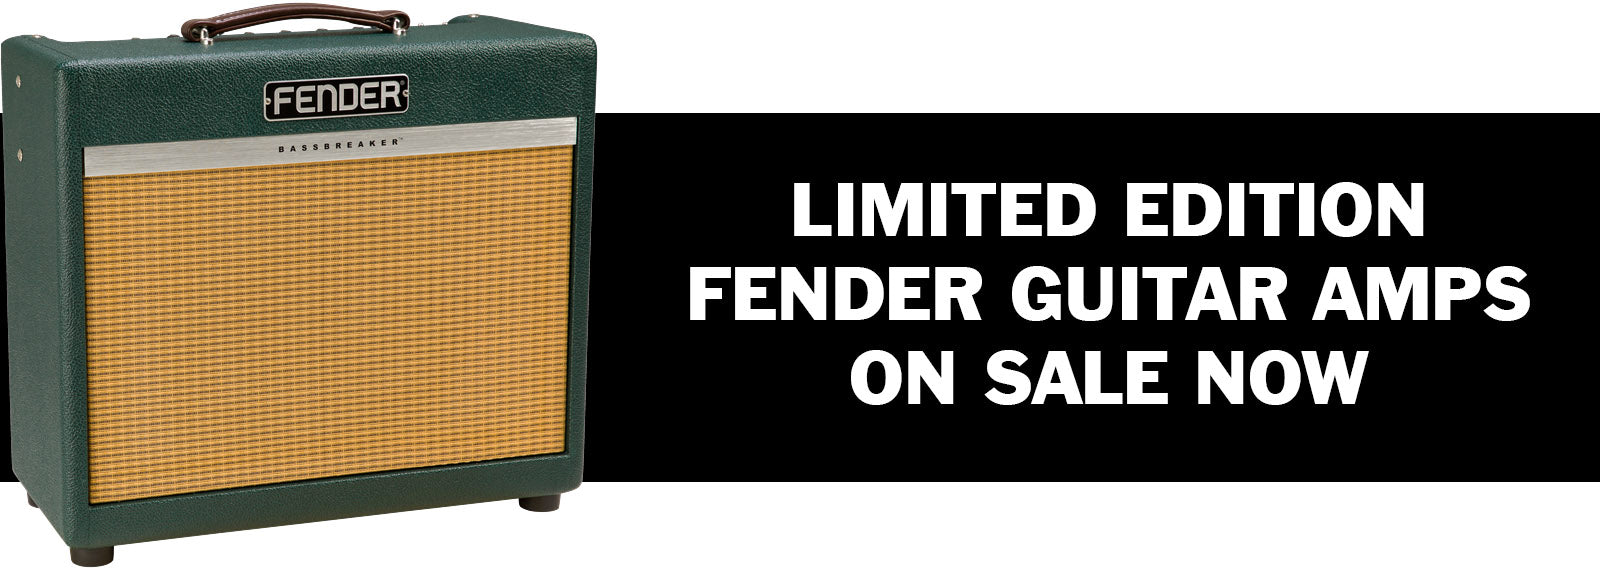 Limited Edition and FSR Fender Amplifiers